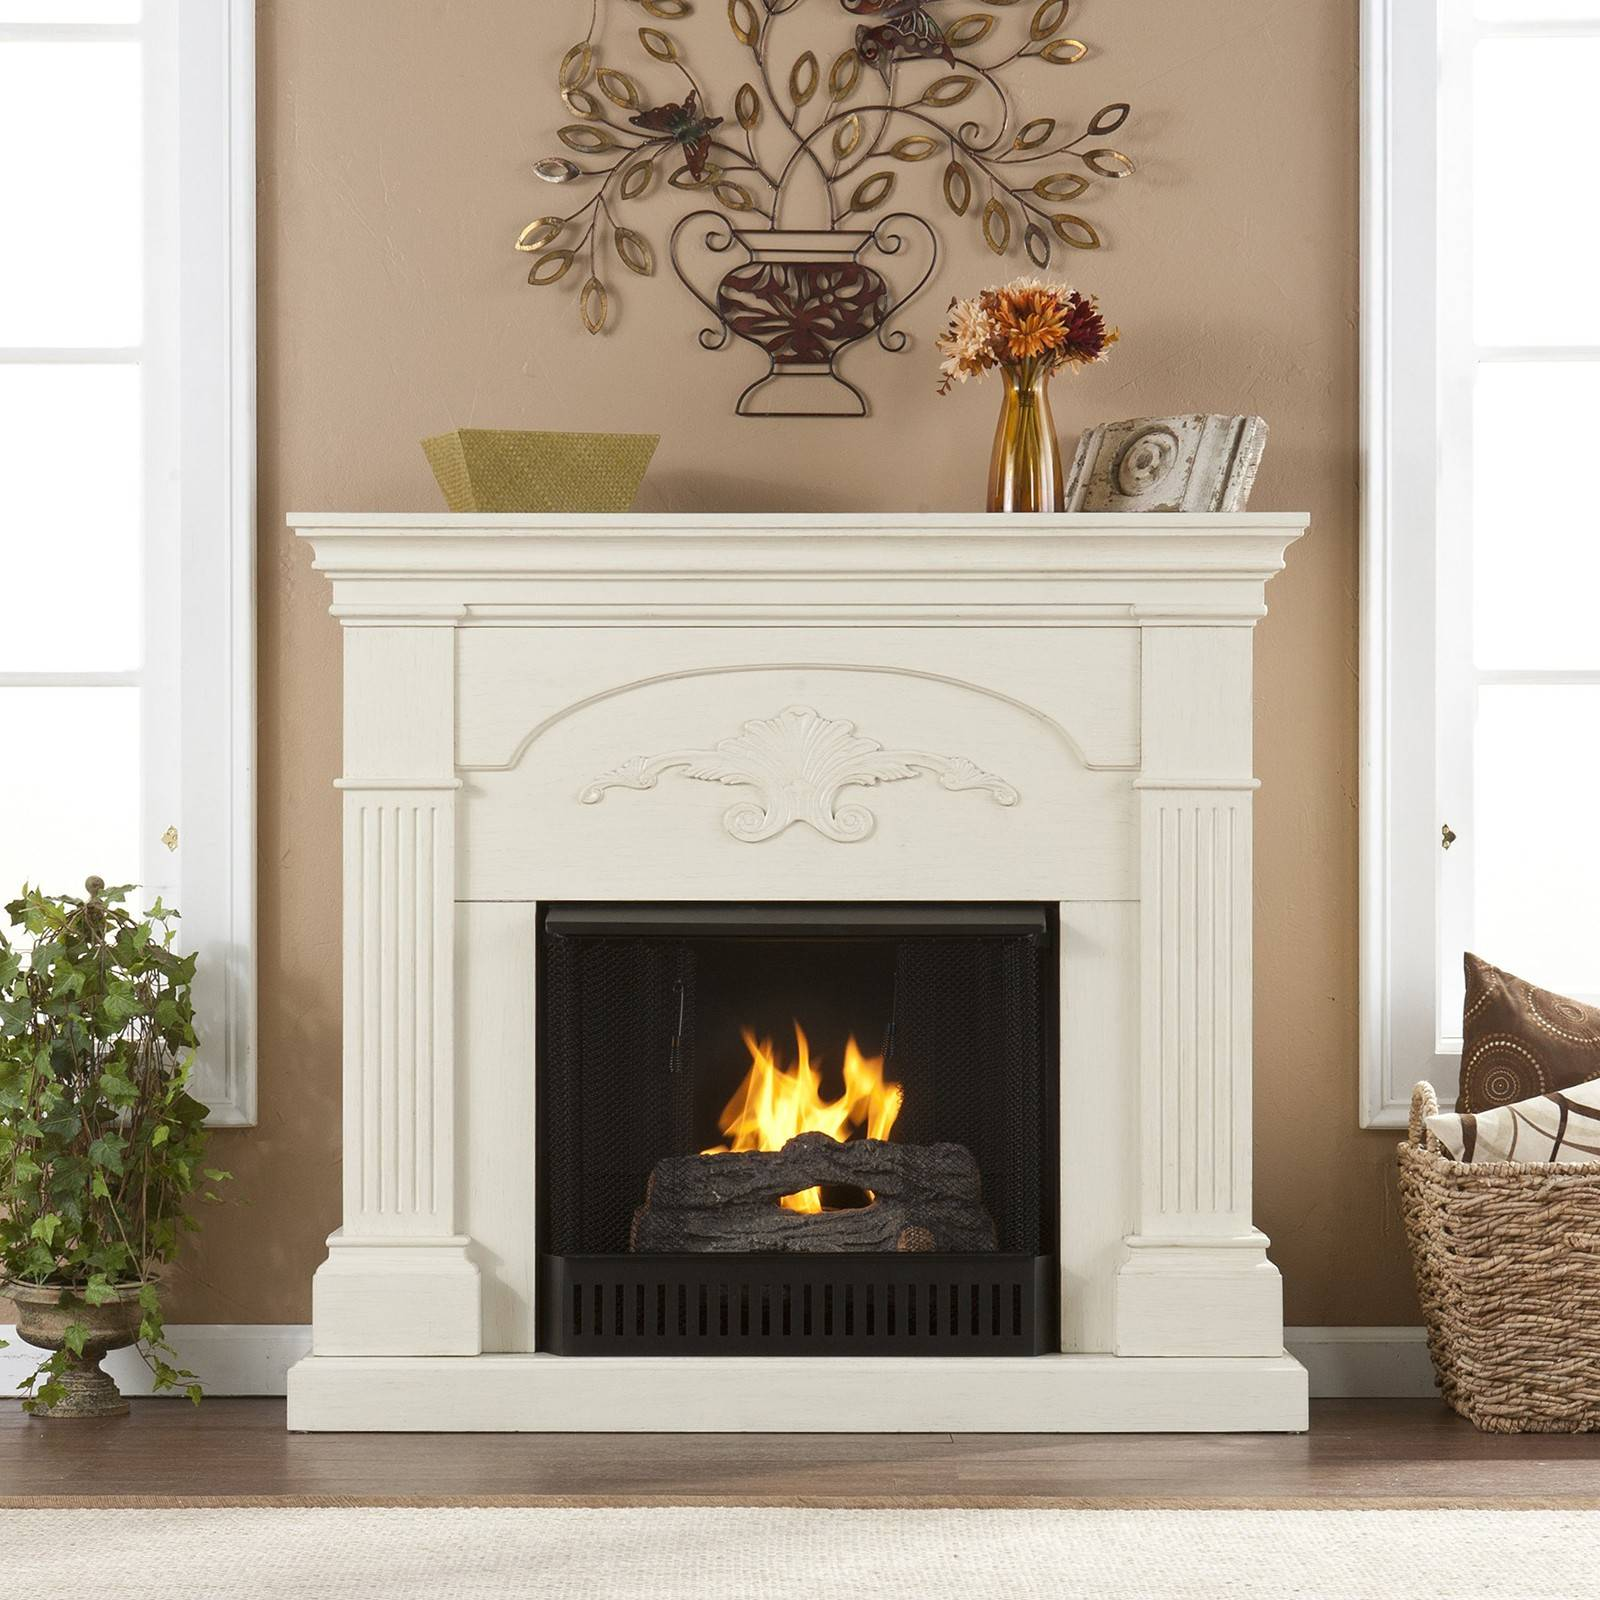 Getting a new fireplace doesn't have to be a big construction job.